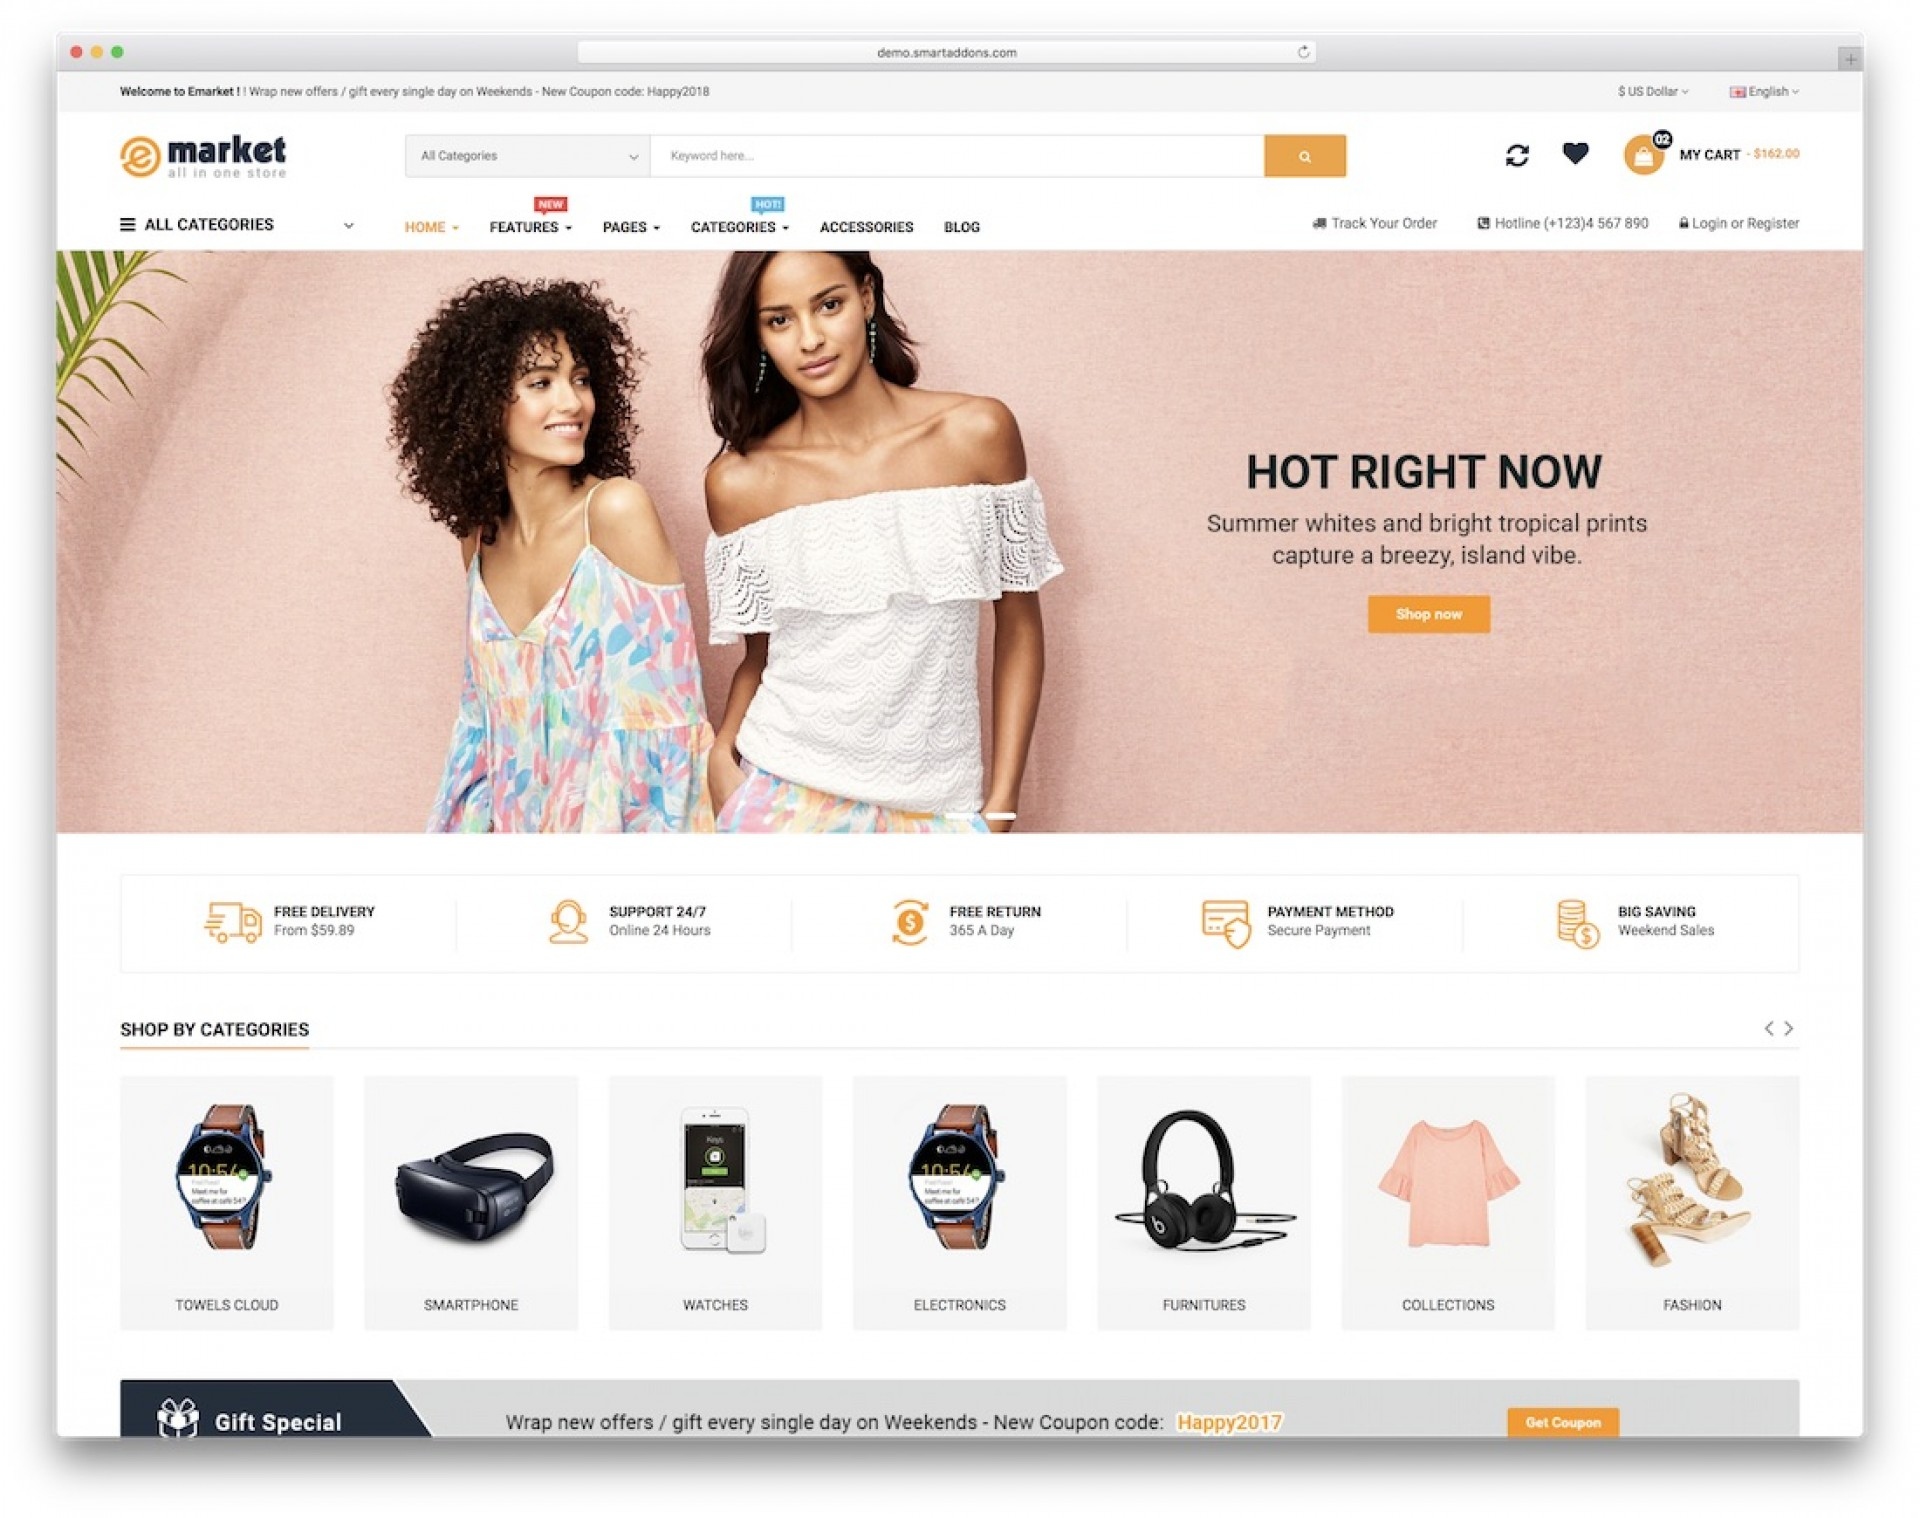 005 Striking Free E Commerce Website Template High Def  Ecommerce Html Cs Bootstrap Php1920